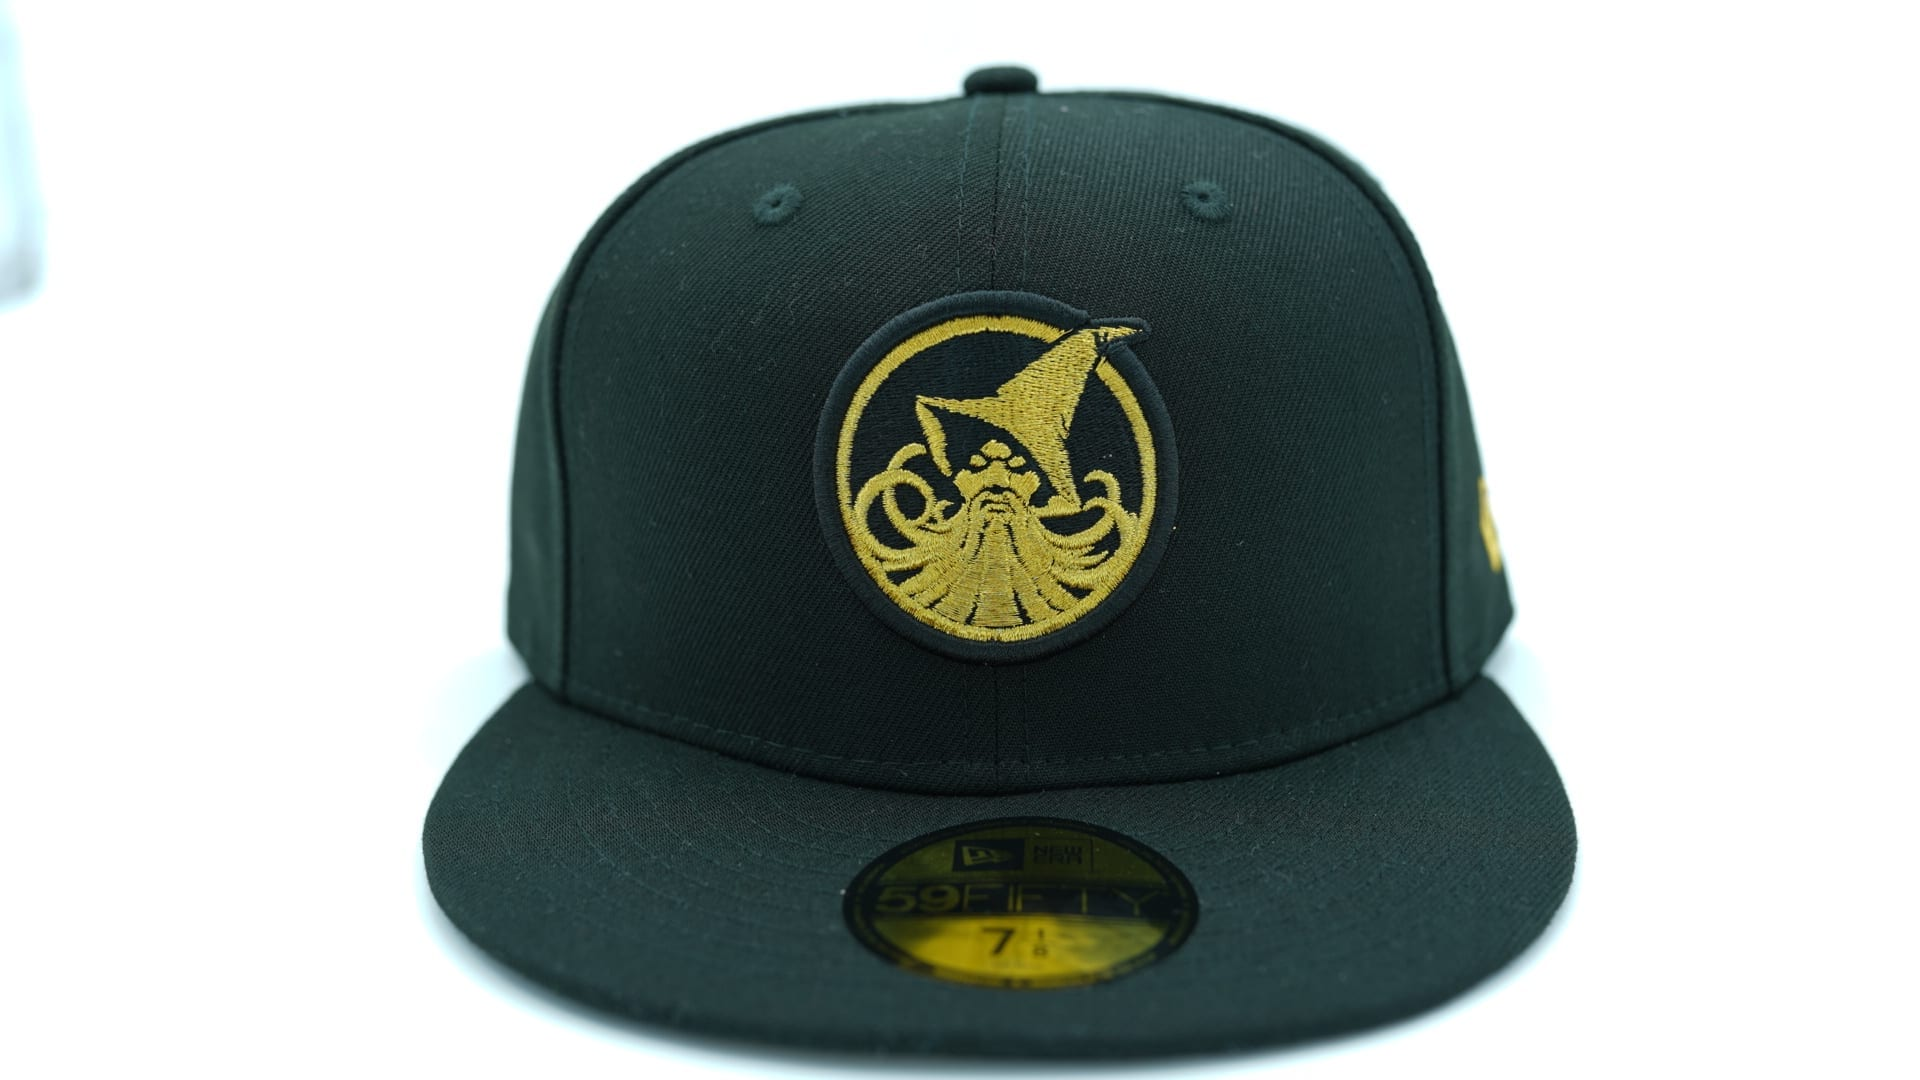 oregon baseball caps coast cap state recognizable front word ducks embroidered you fly